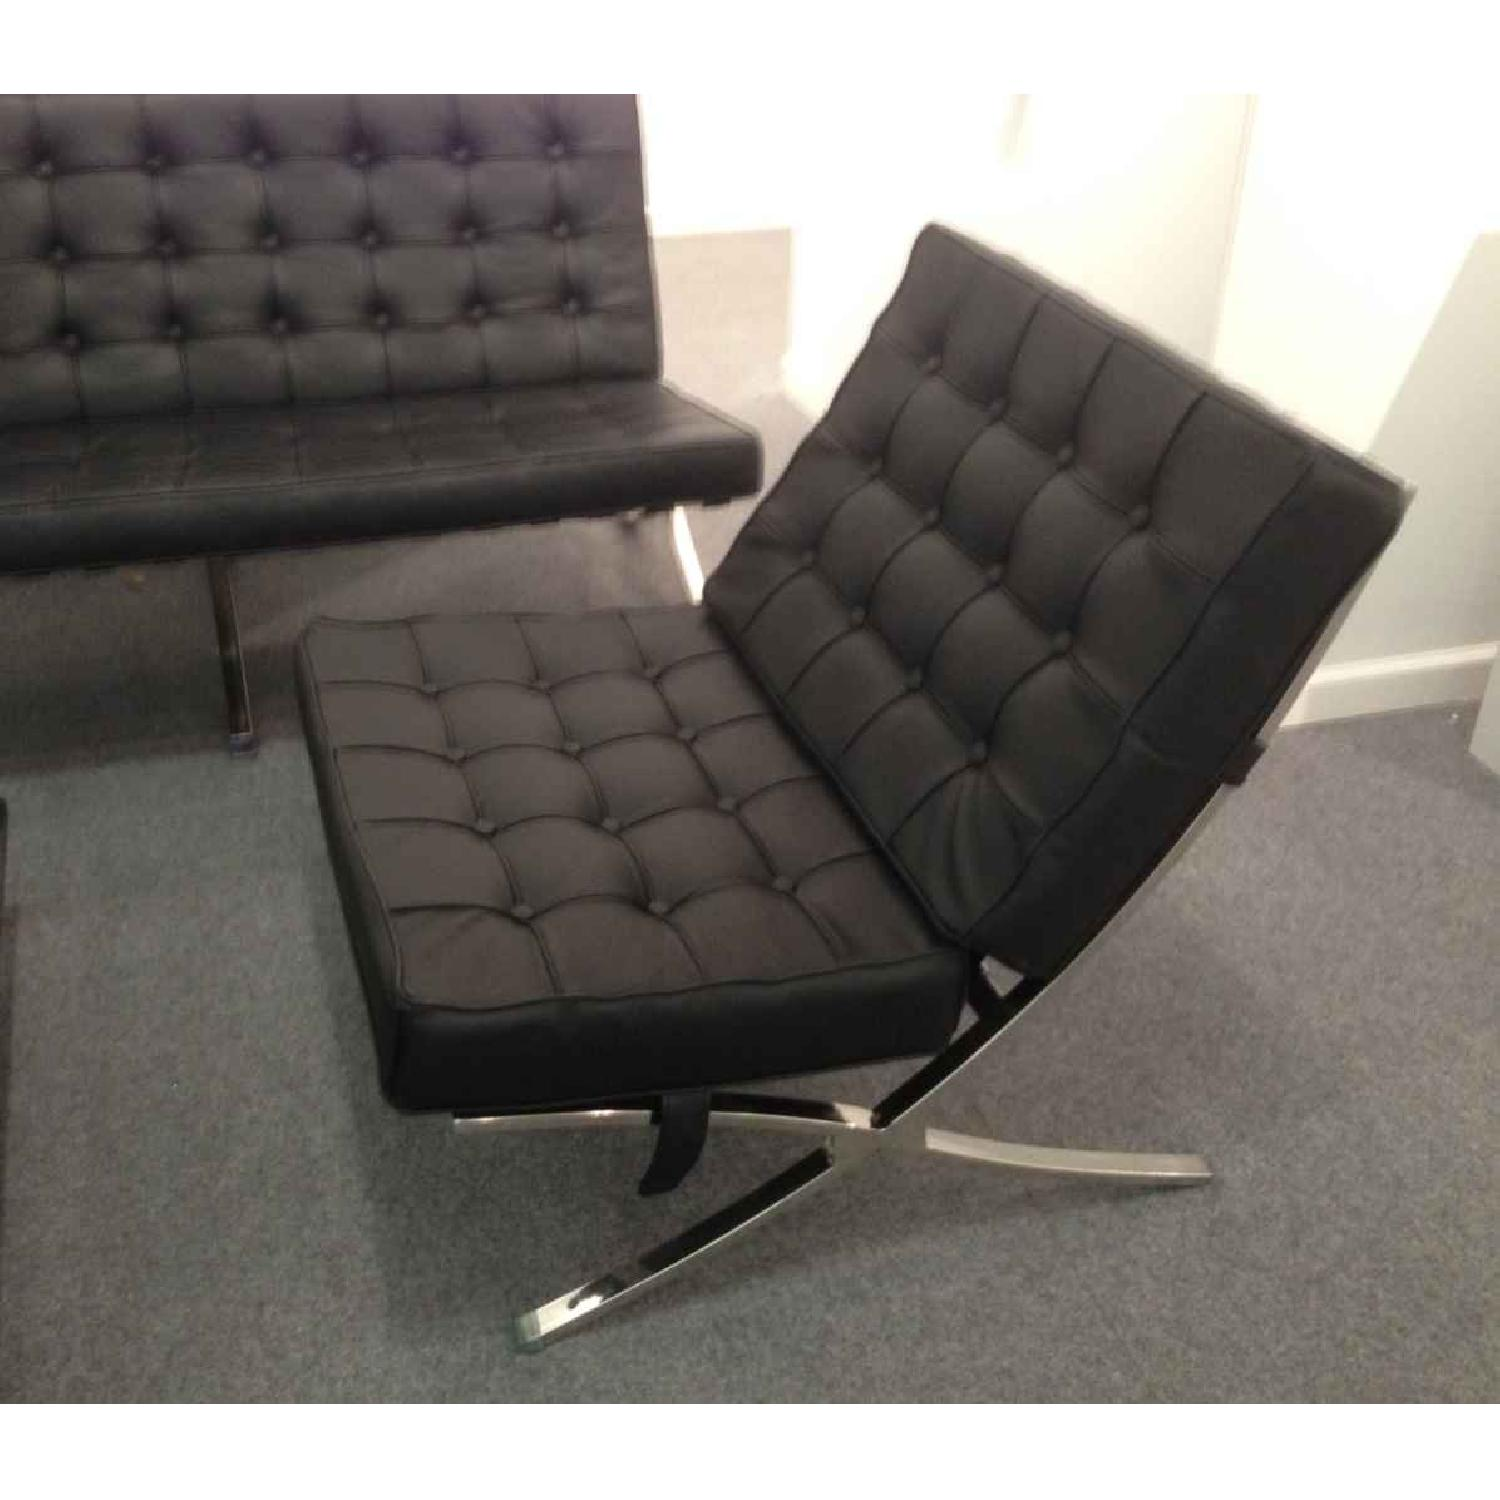 Barcelona Style Premium Leather Chair - image-2